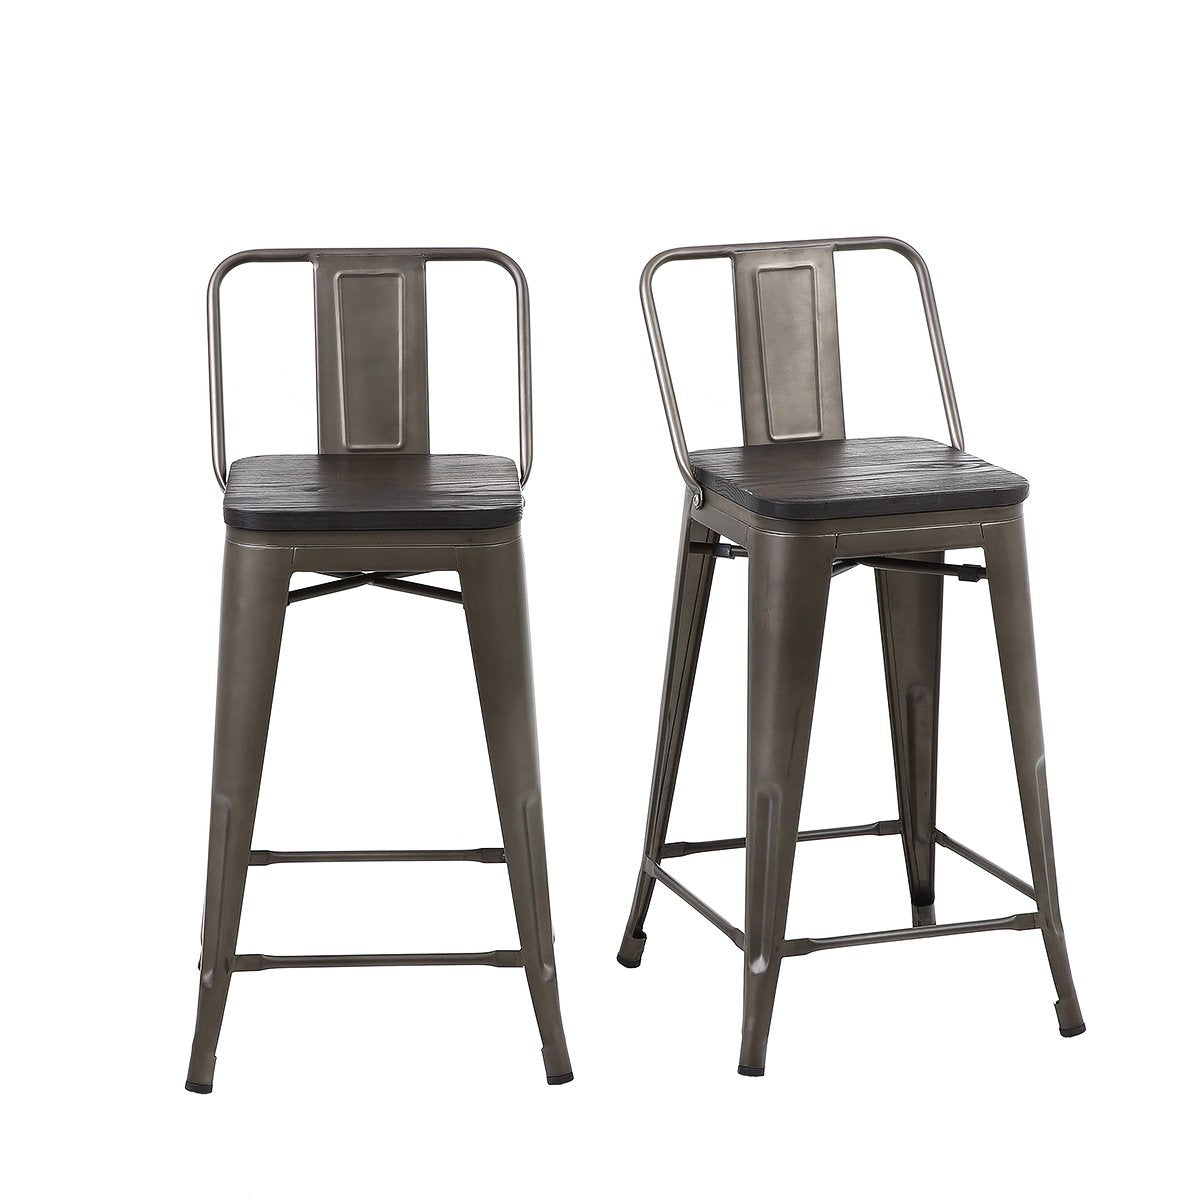 Brilliant 24 Inch Bronze Metal Counter Stools With Wooden Seat Medium Back Set Of 4 Caraccident5 Cool Chair Designs And Ideas Caraccident5Info